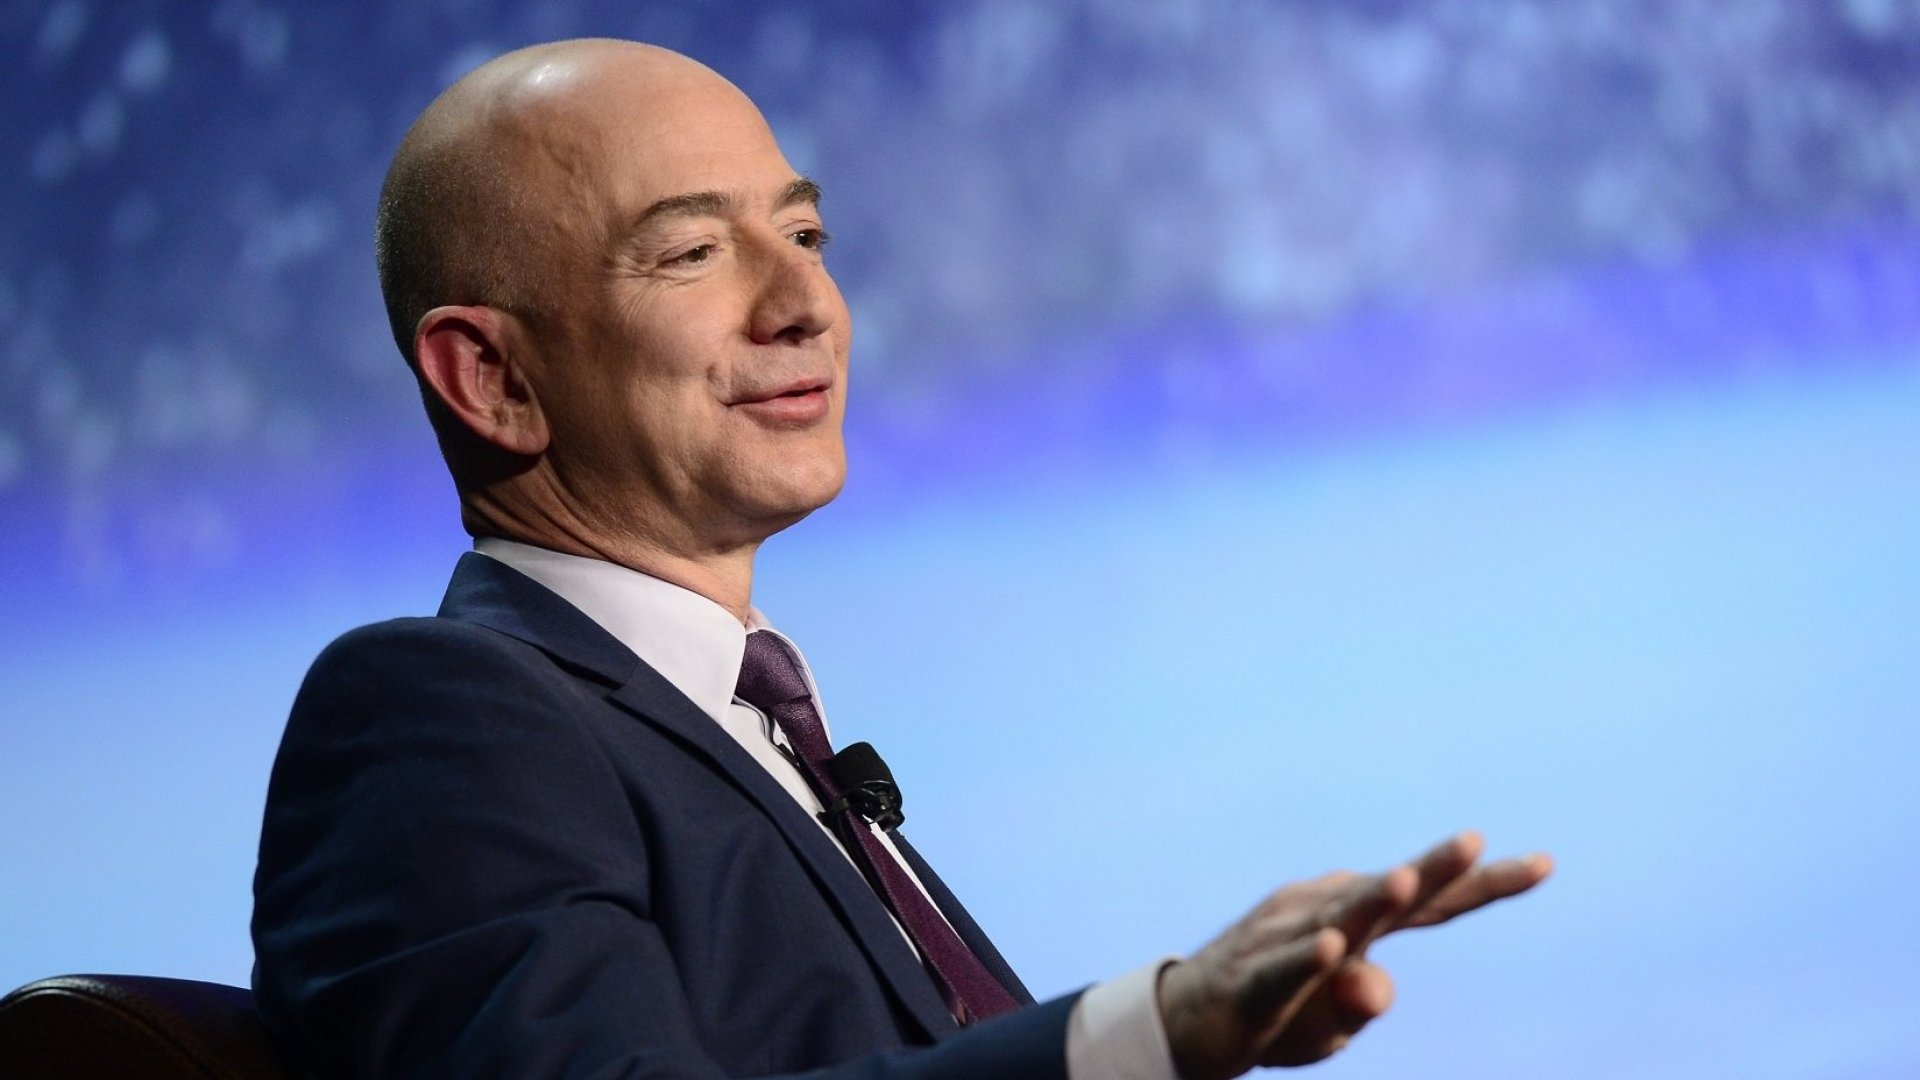 Amazon's Founder Jeff Bezos, the Richest Man in the World, Just Became a Lot More Wealthy